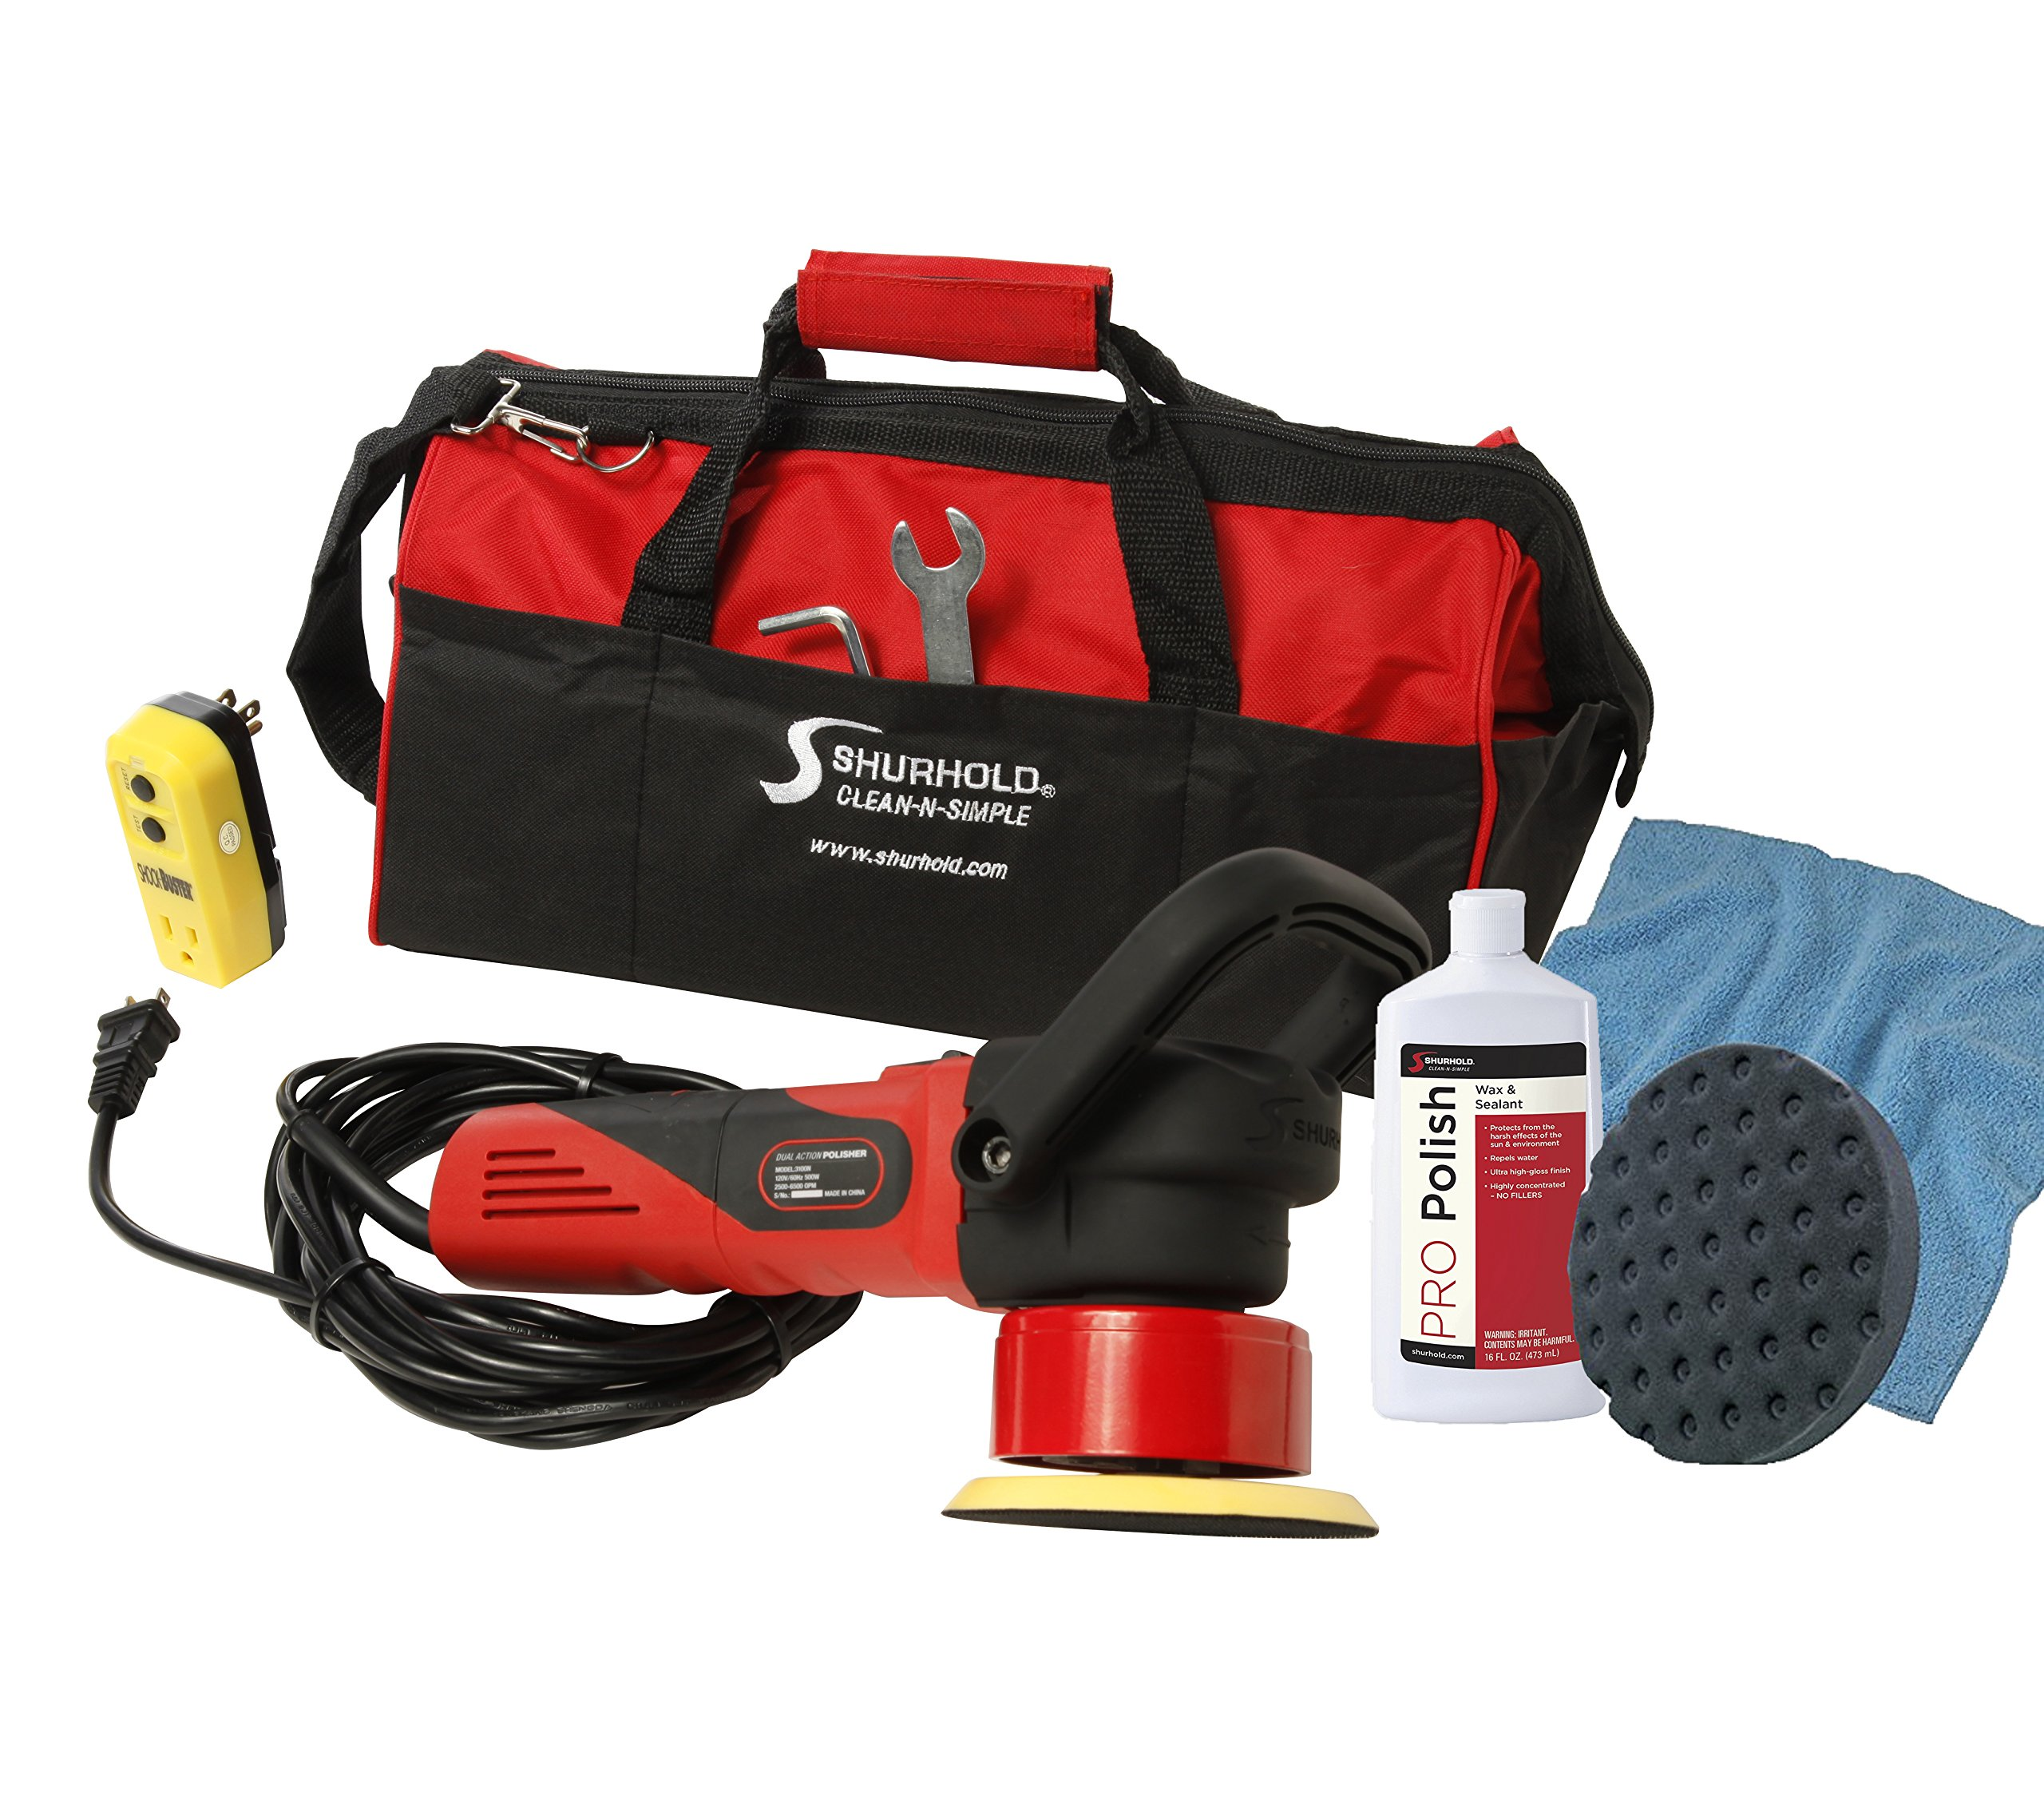 Shurhold 3101 Dual Action Polisher Starter Kit by Shurhold (Image #1)